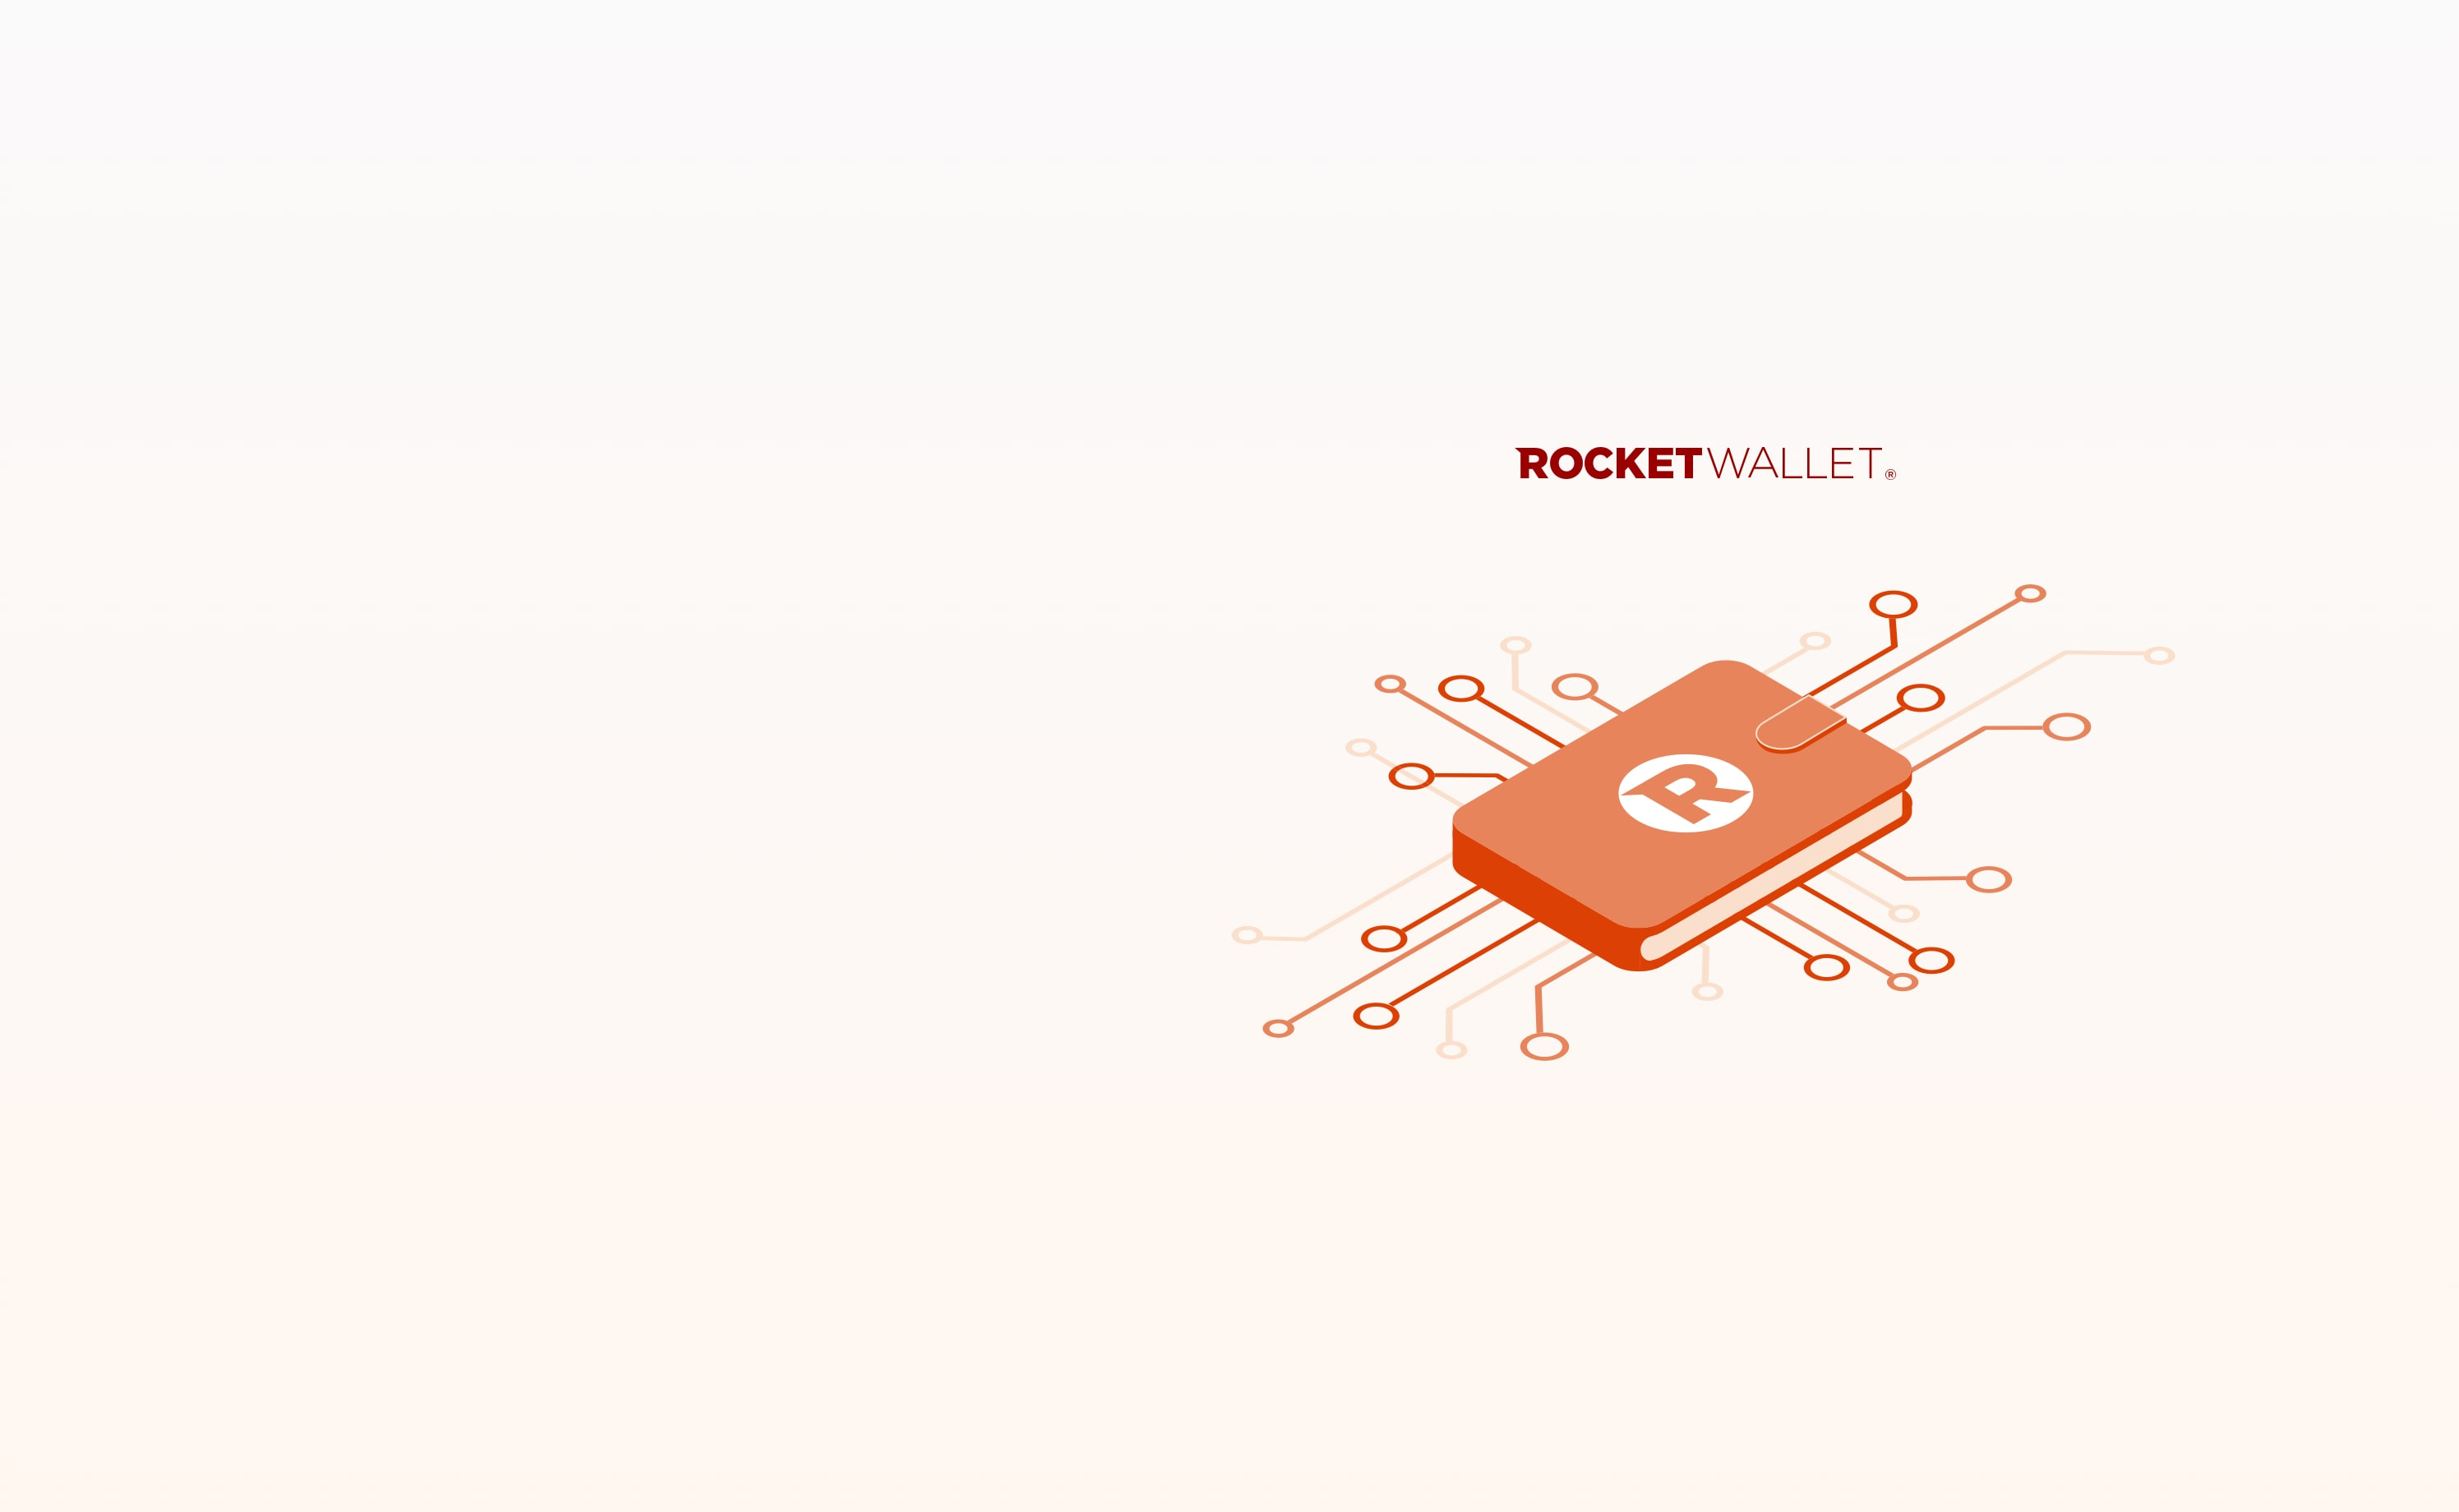 Rocket wallet hero